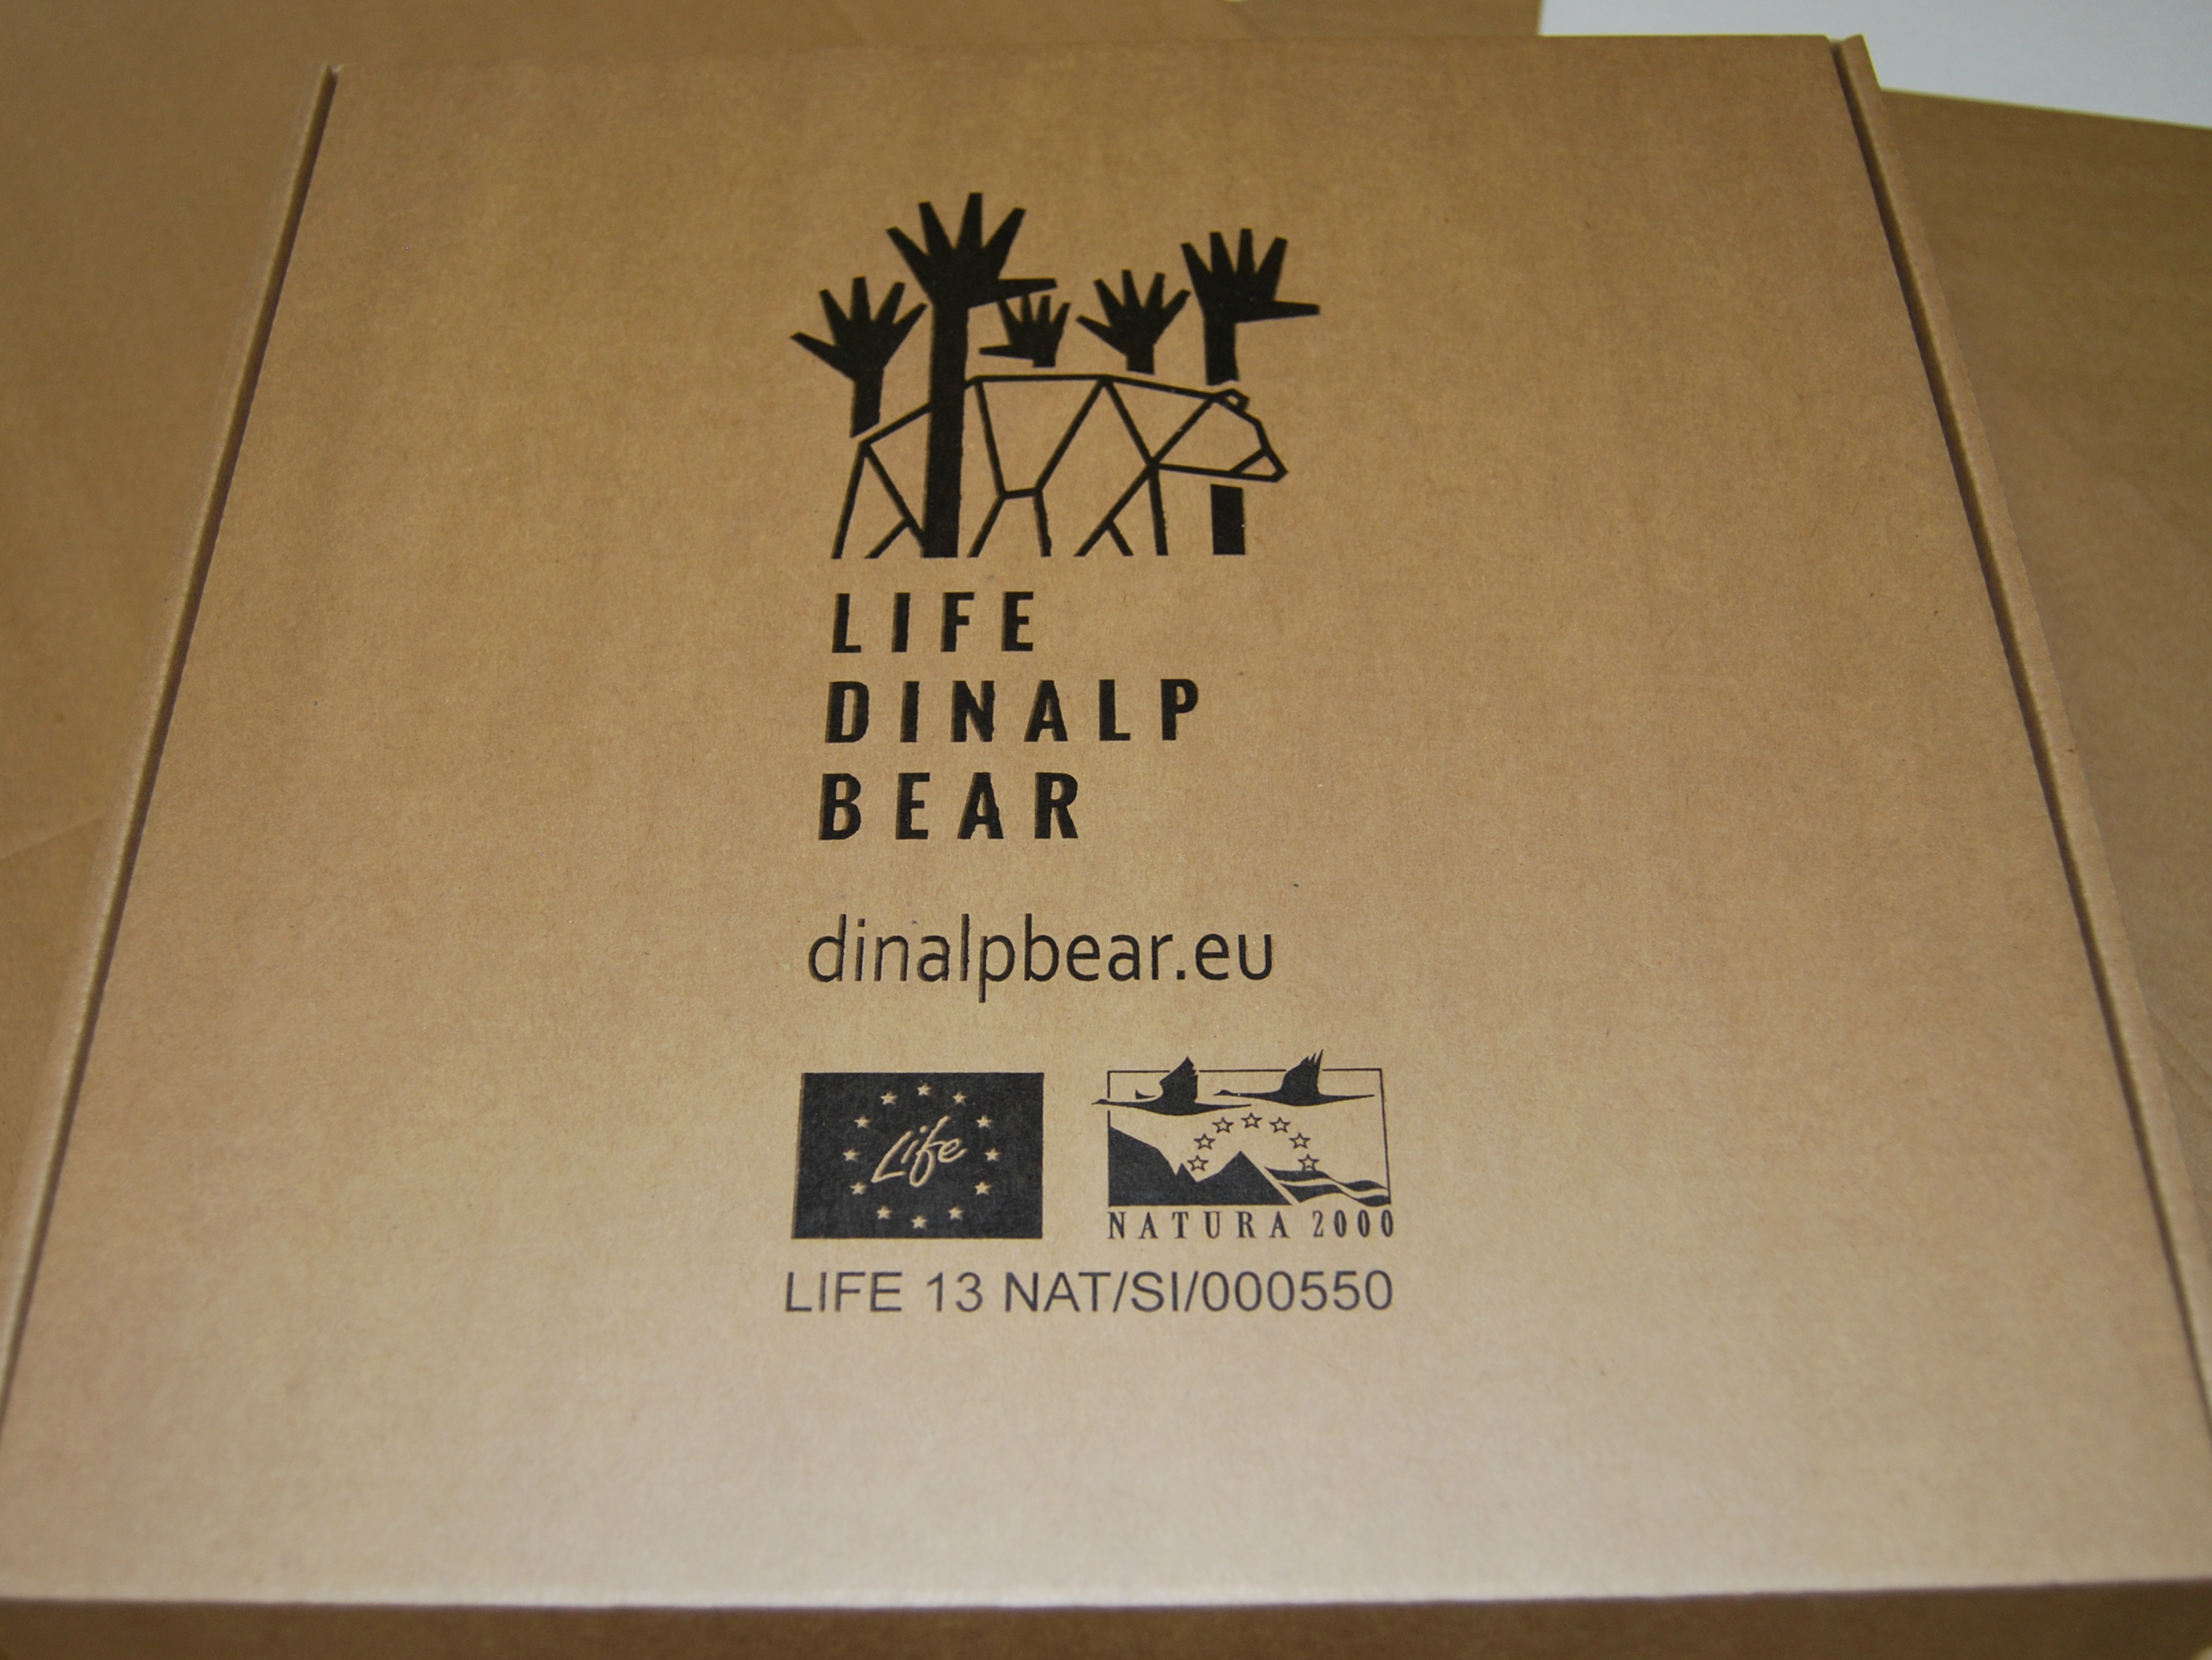 New bear educational kits now available